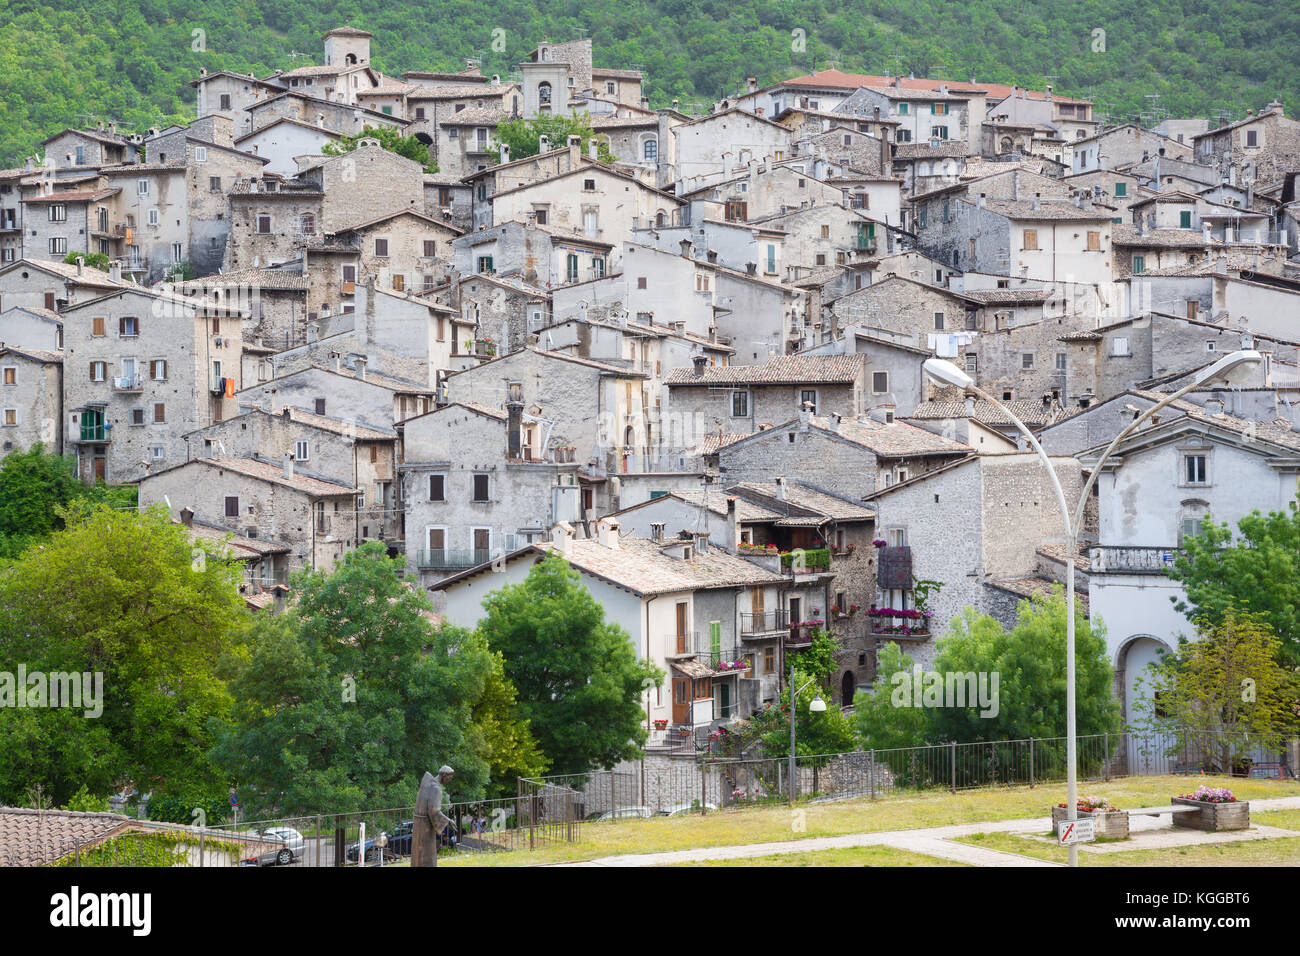 Scanno (L'Aquila, Italy) - Landscape of the little ancient town - Stock Image